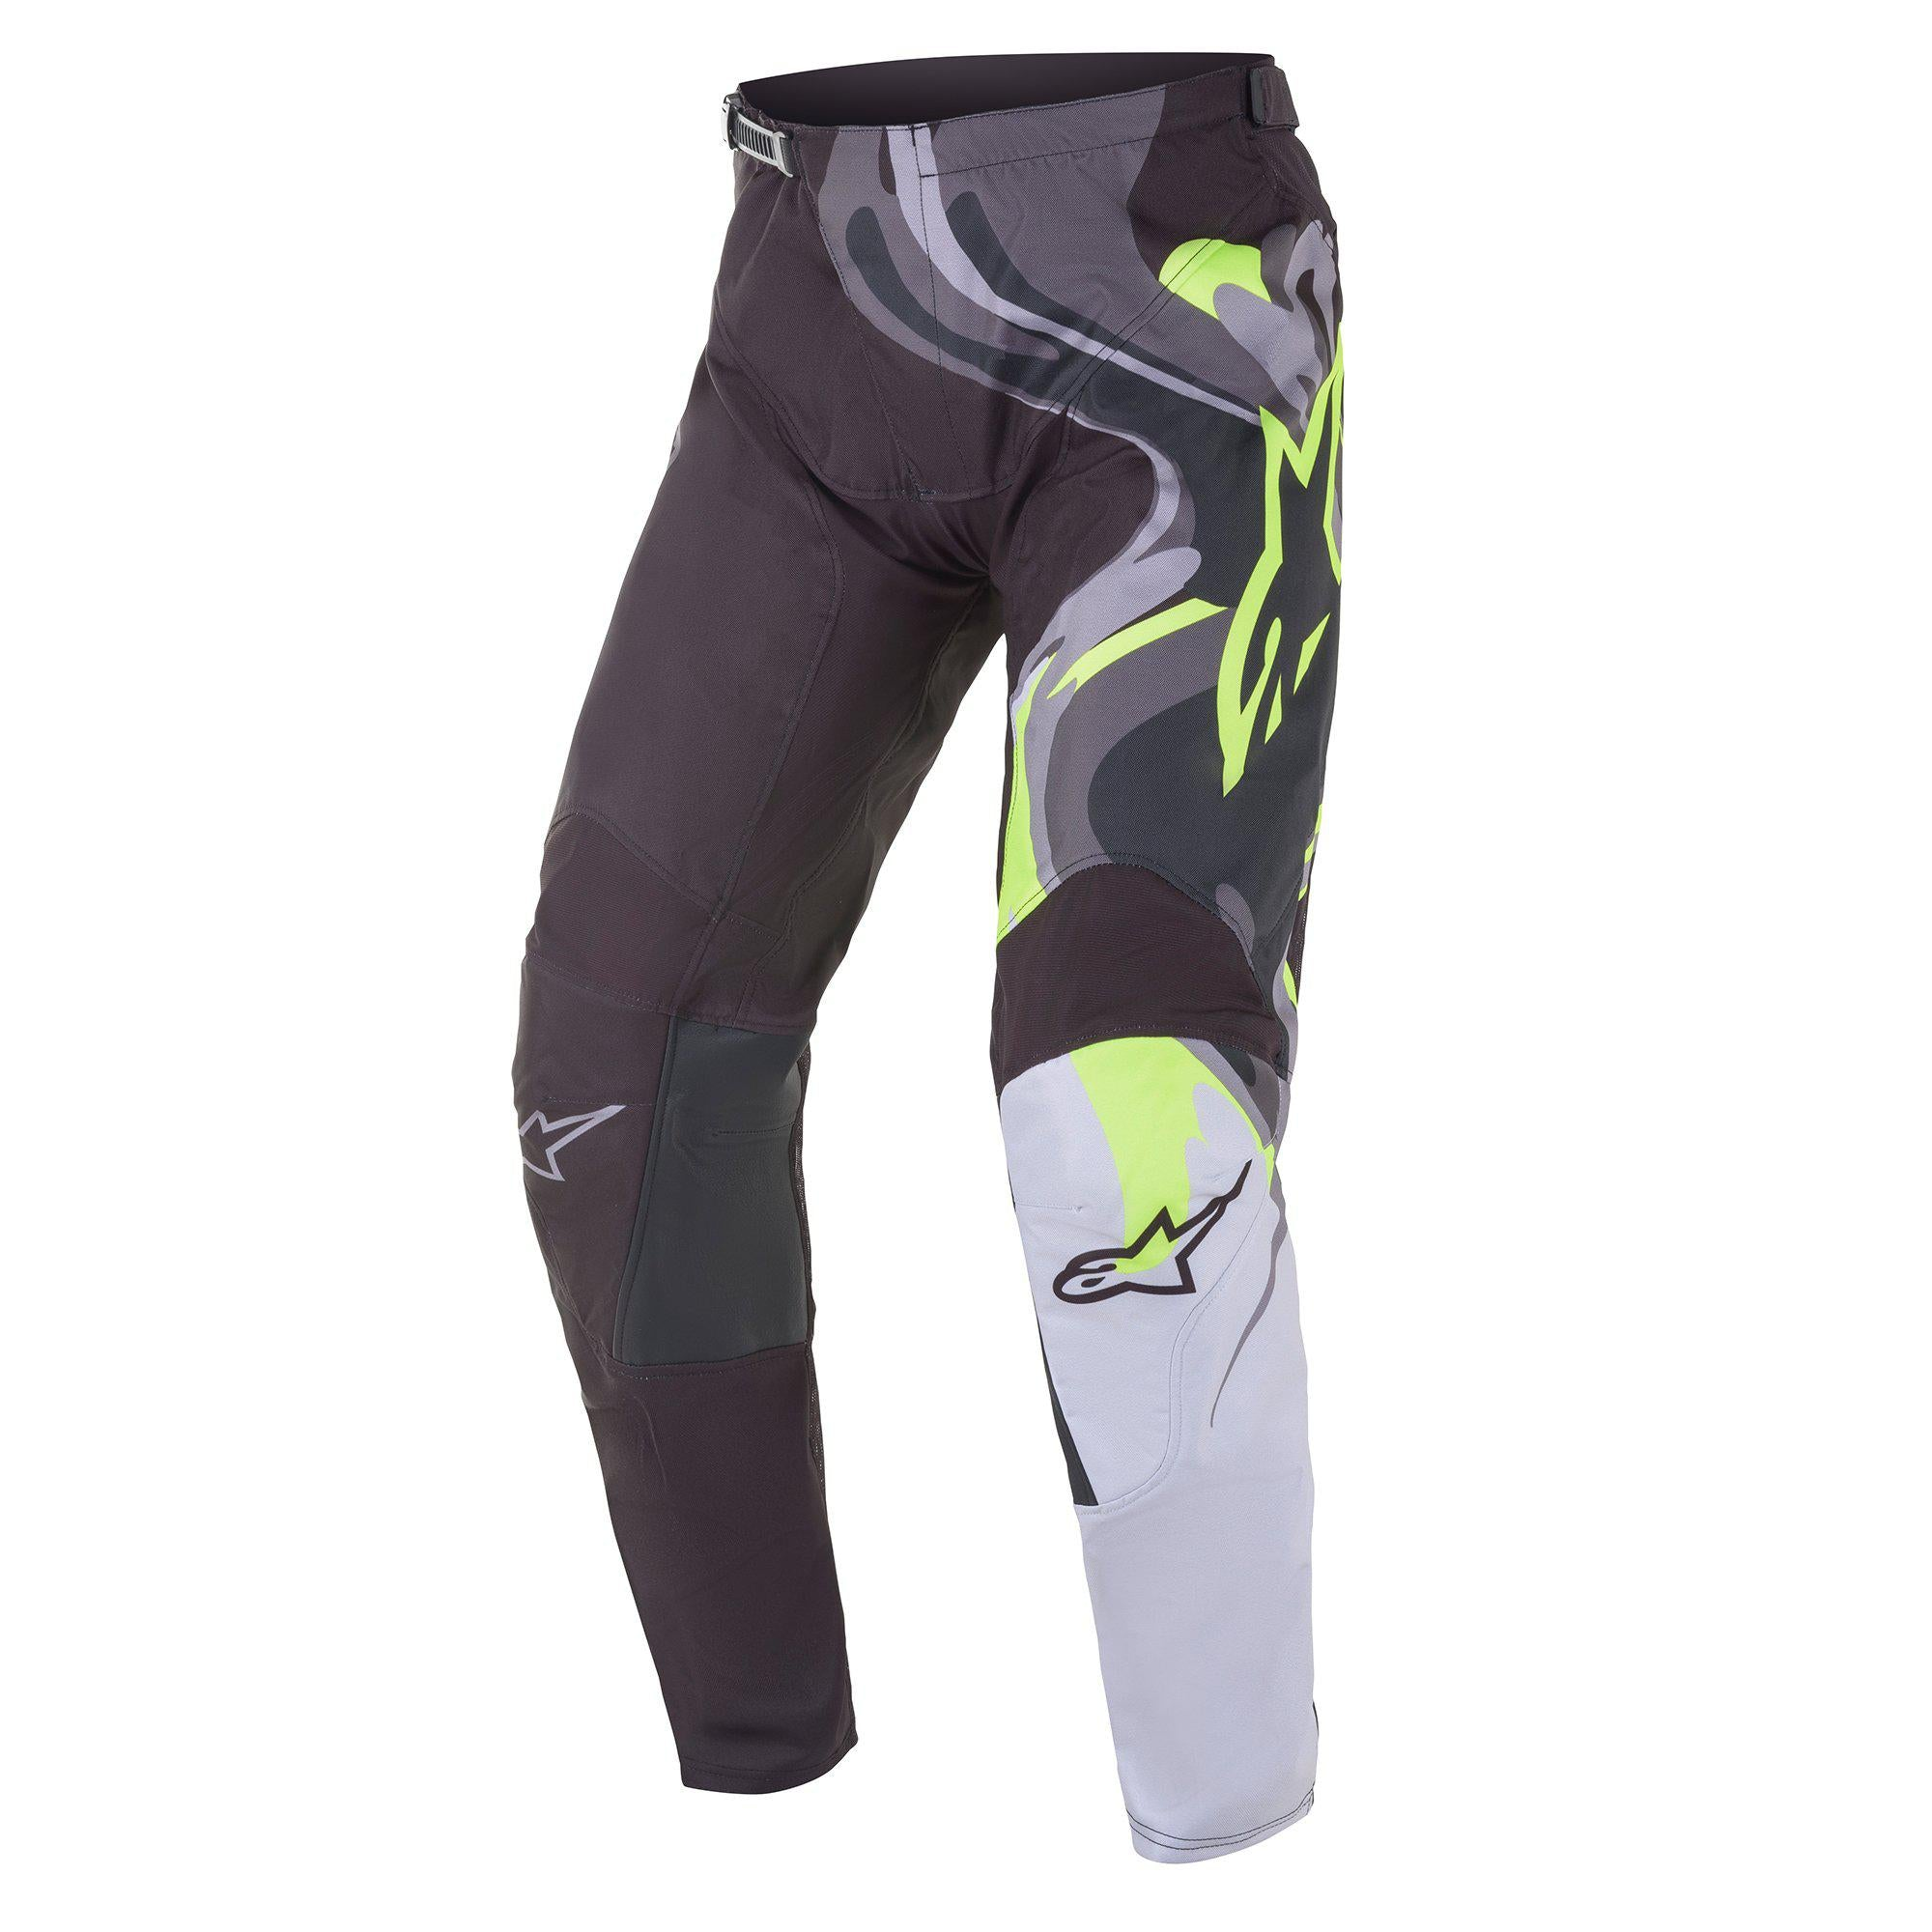 2021 Racer Flagship Pants